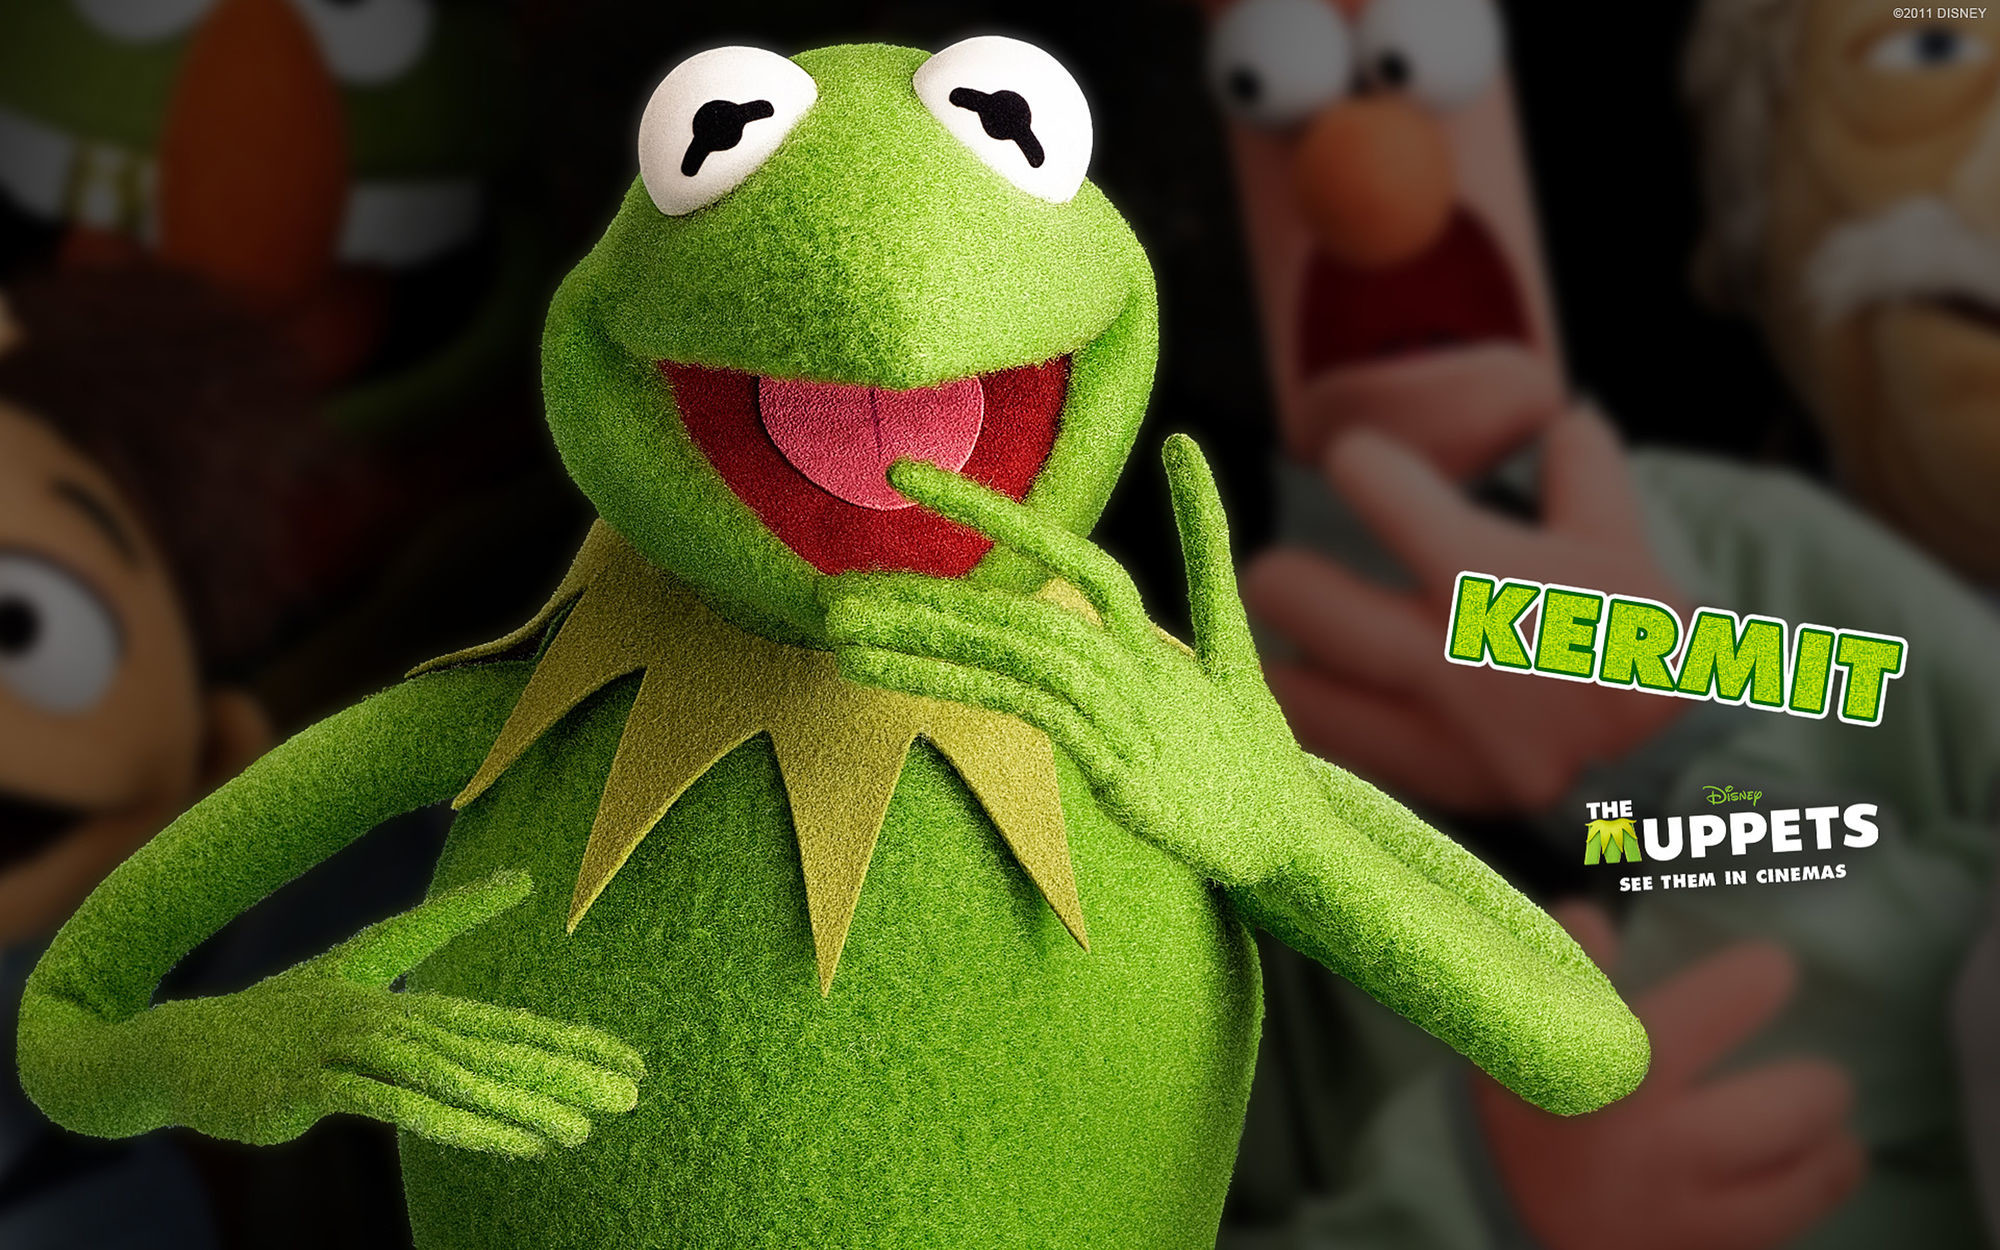 Kermit the Frog/Gallery | Fictional Characters Wiki | FANDOM powered by  Wikia